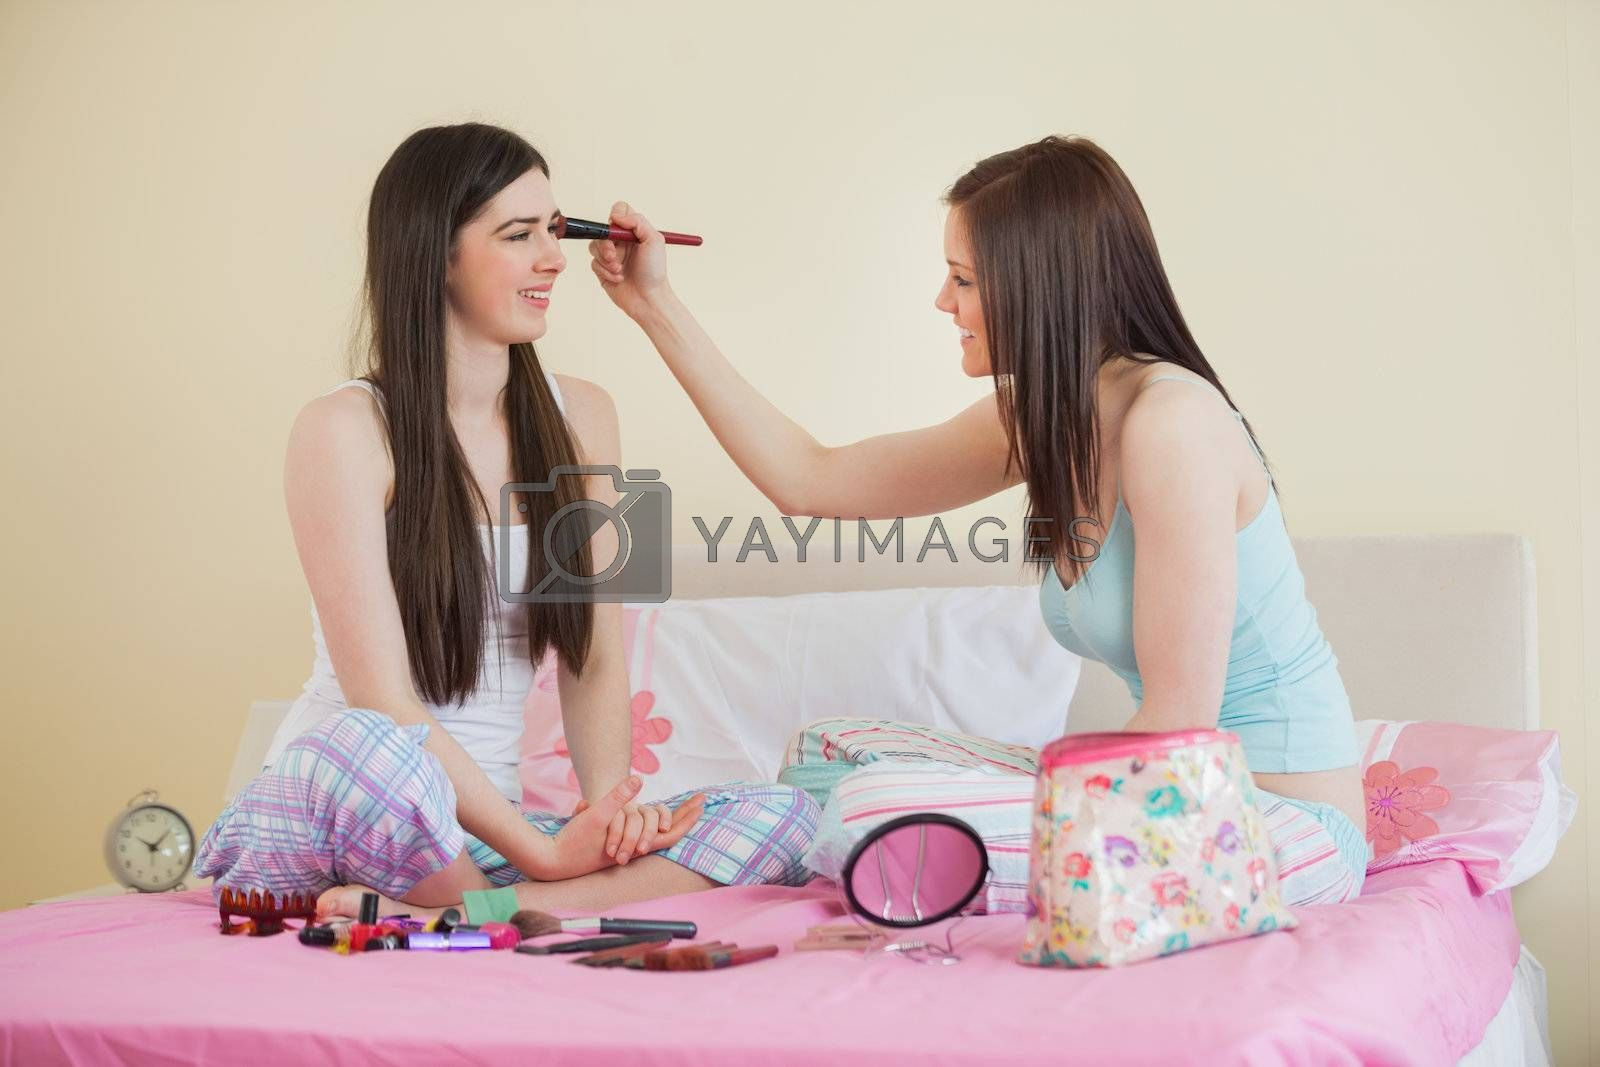 Smiling girl giving her friend a makeover at sleepover by Wavebreakmedia